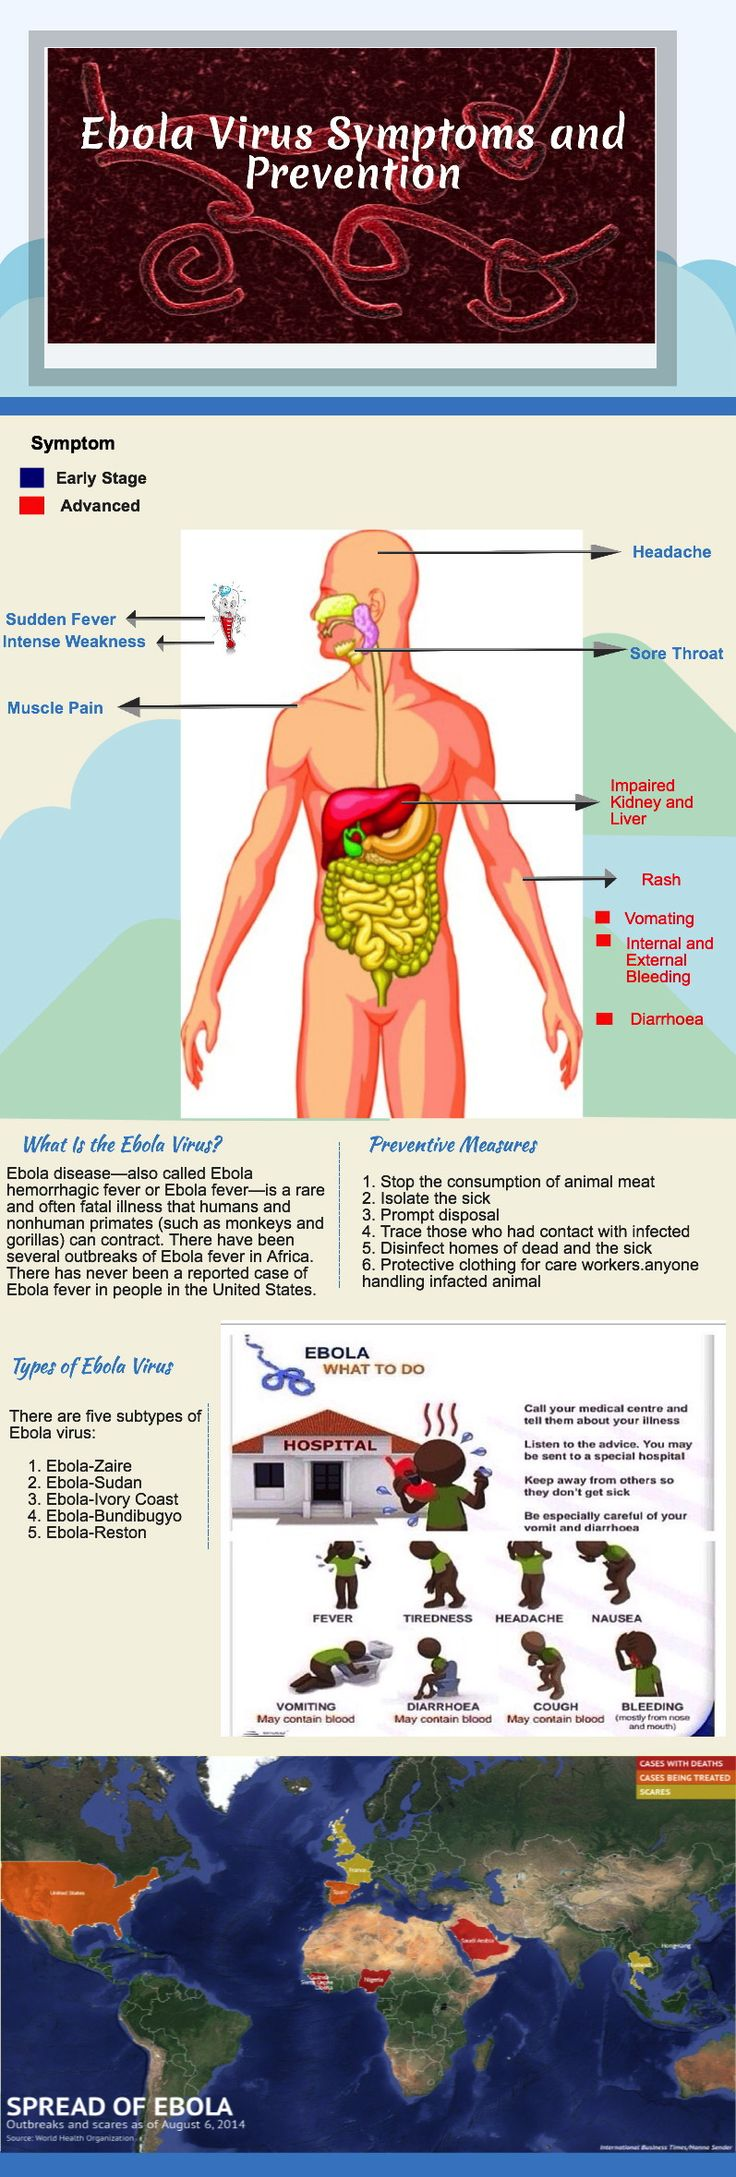 Ebola Virus Symptoms and Prevention